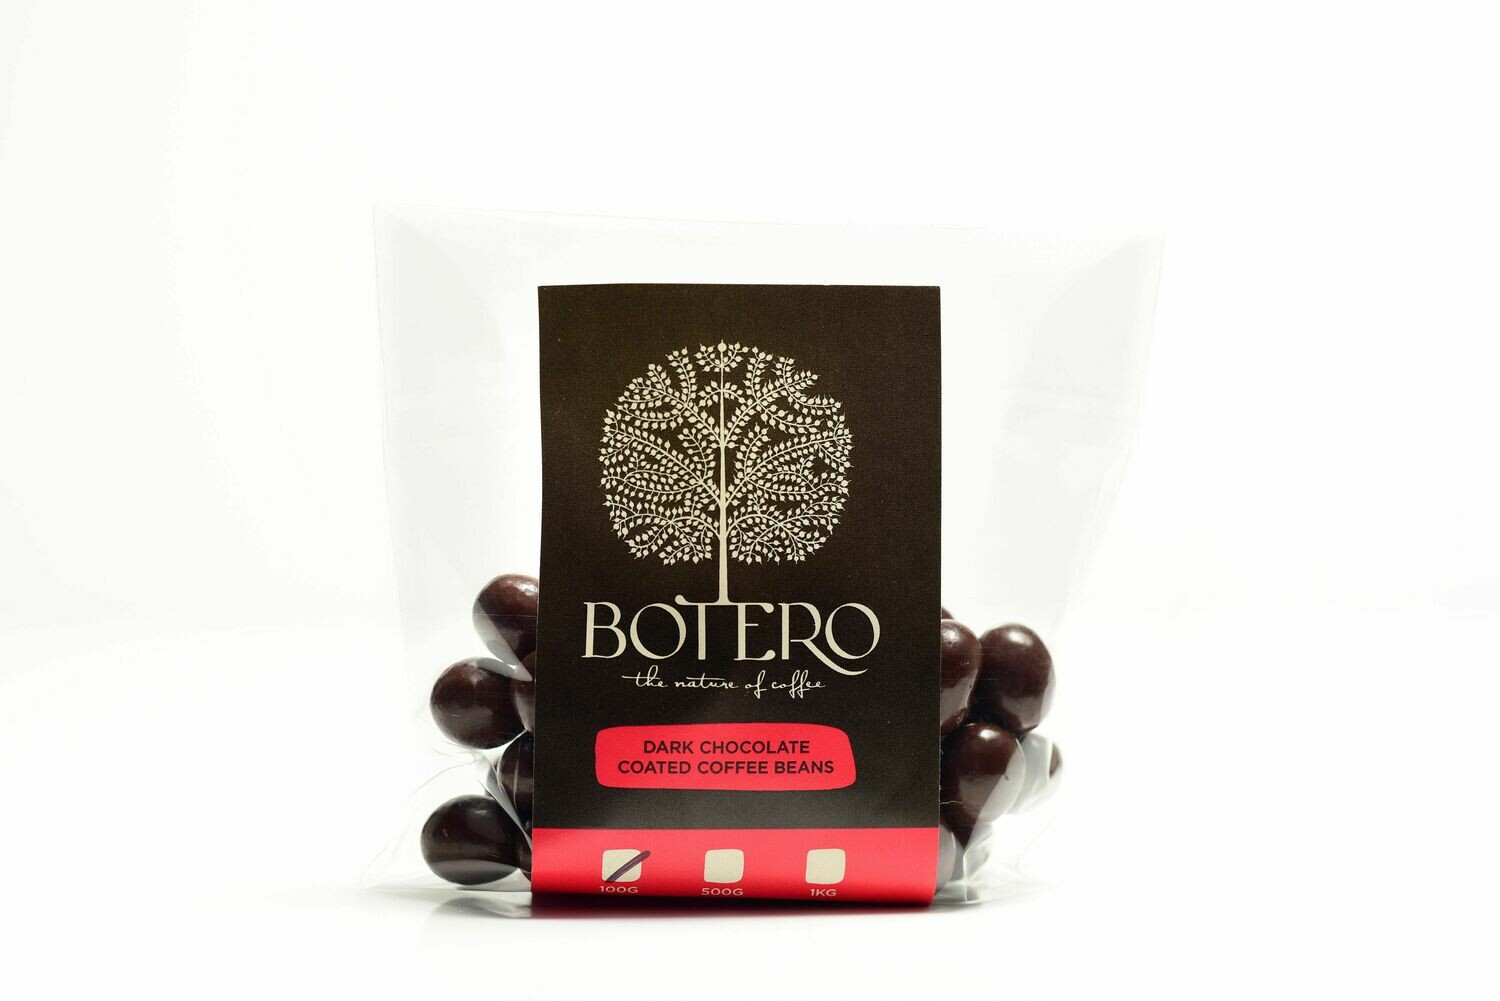 Botero Dark Choc Coated Coffee Beans 100g